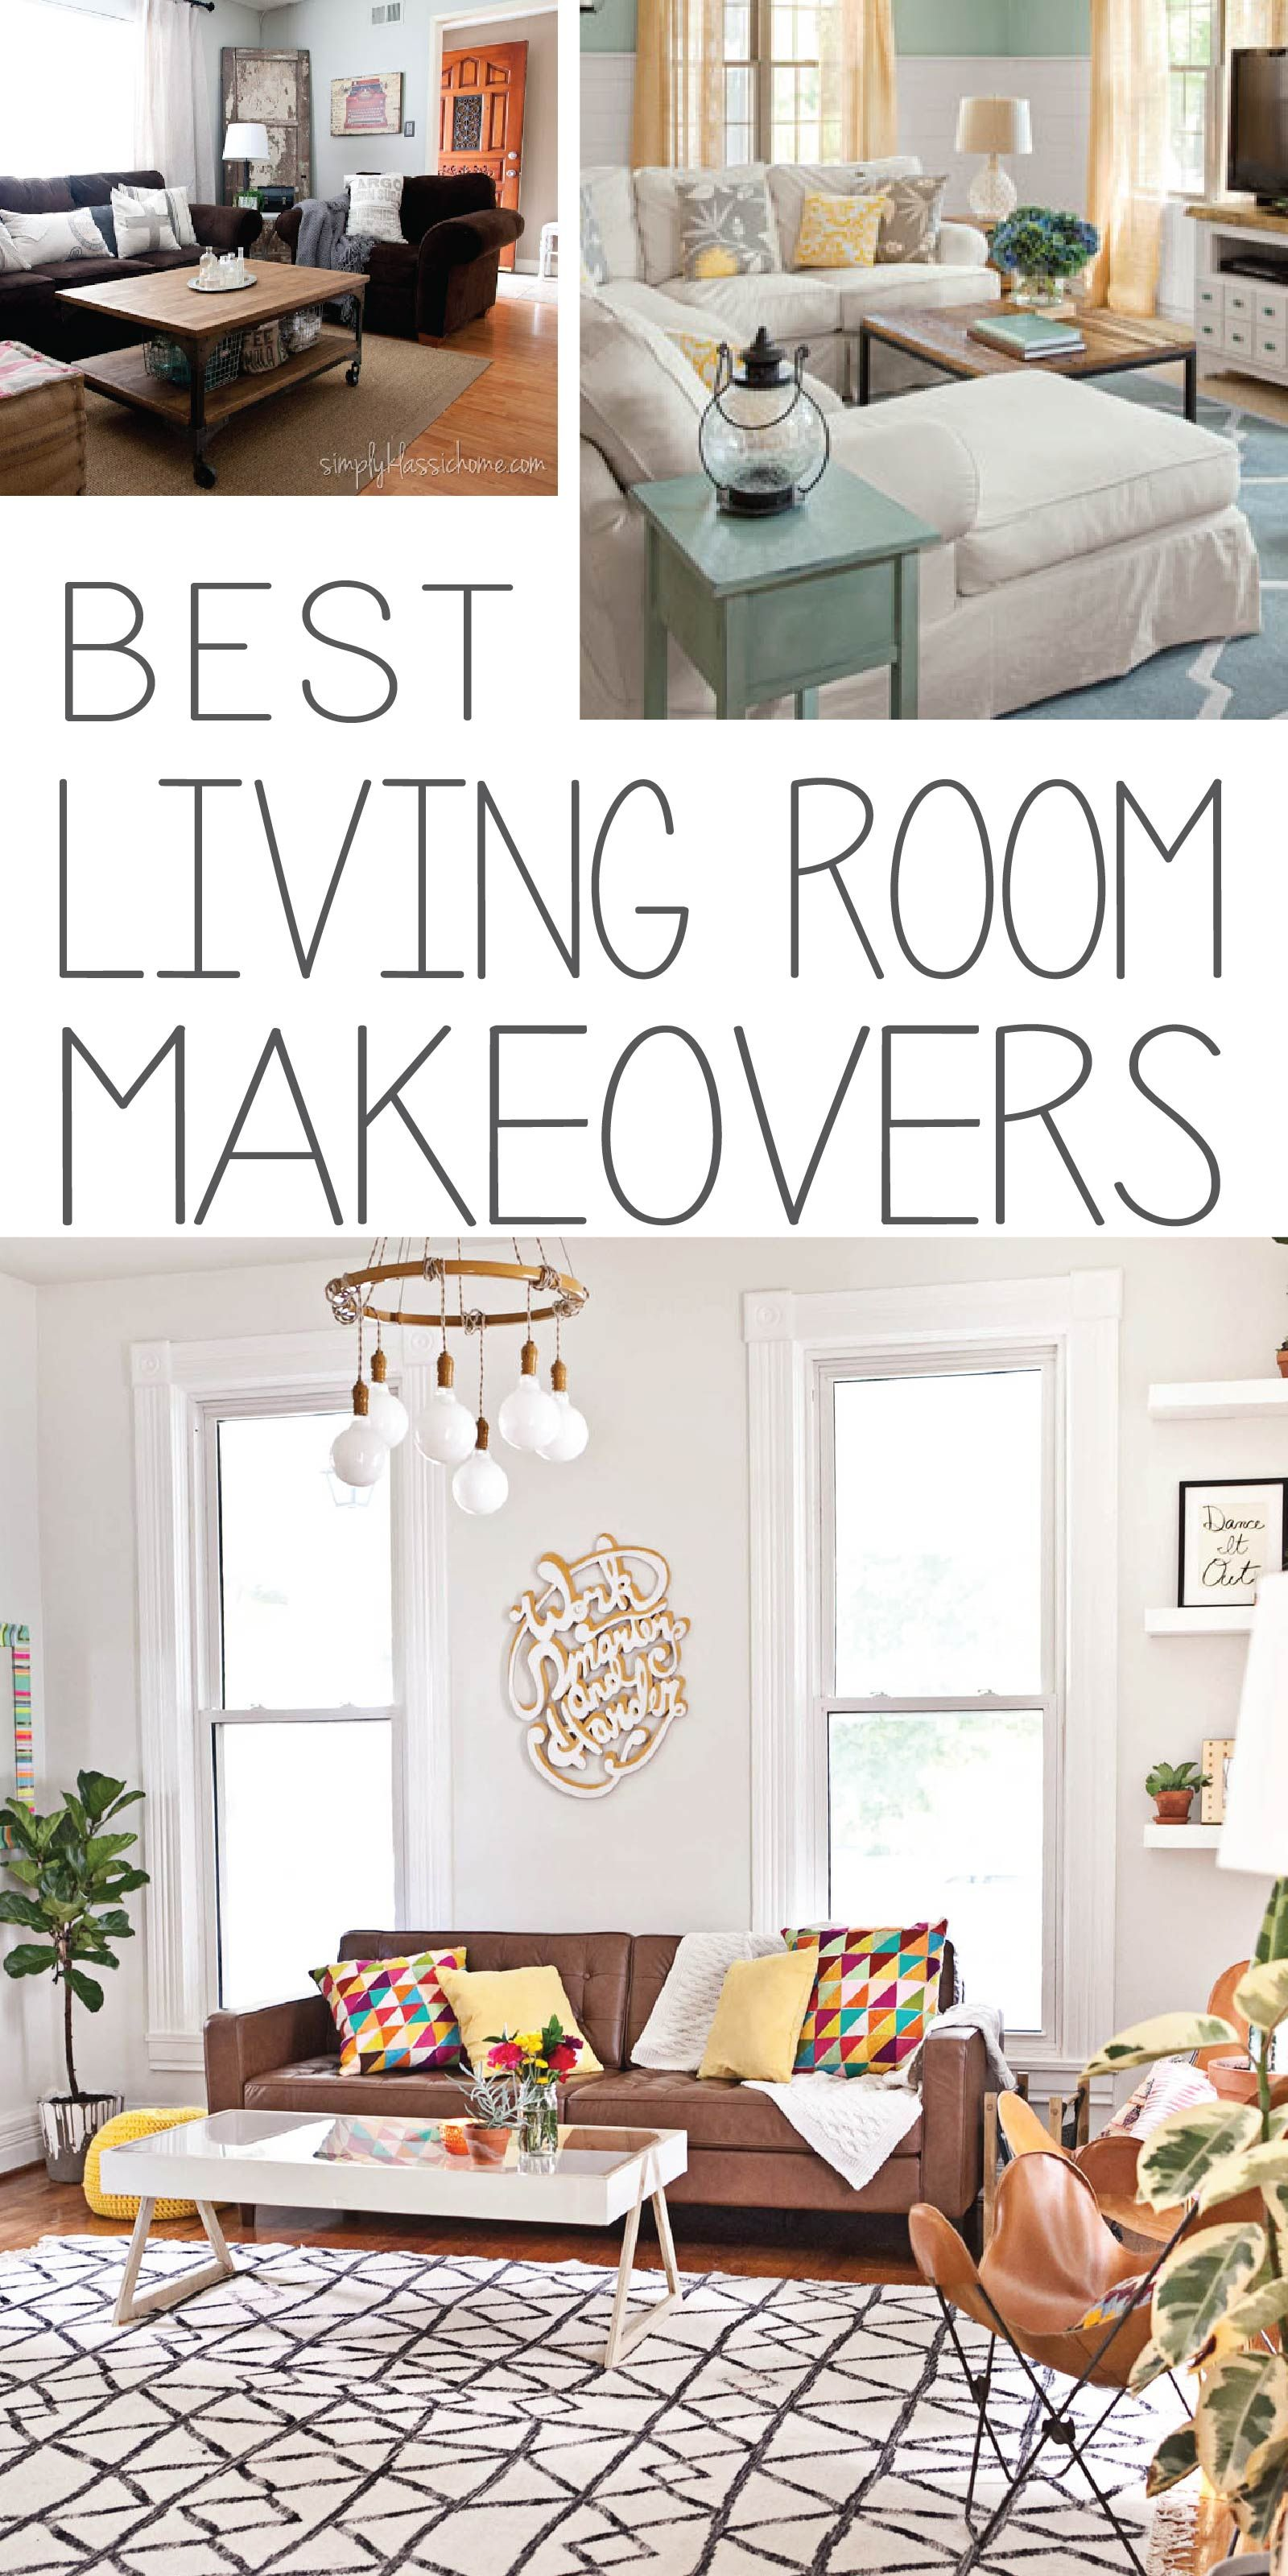 Eye Popping Living Room Makeovers Painted Furniture Ideas Living Room Makeover Room Makeover Home Decor Living room makeover ideas